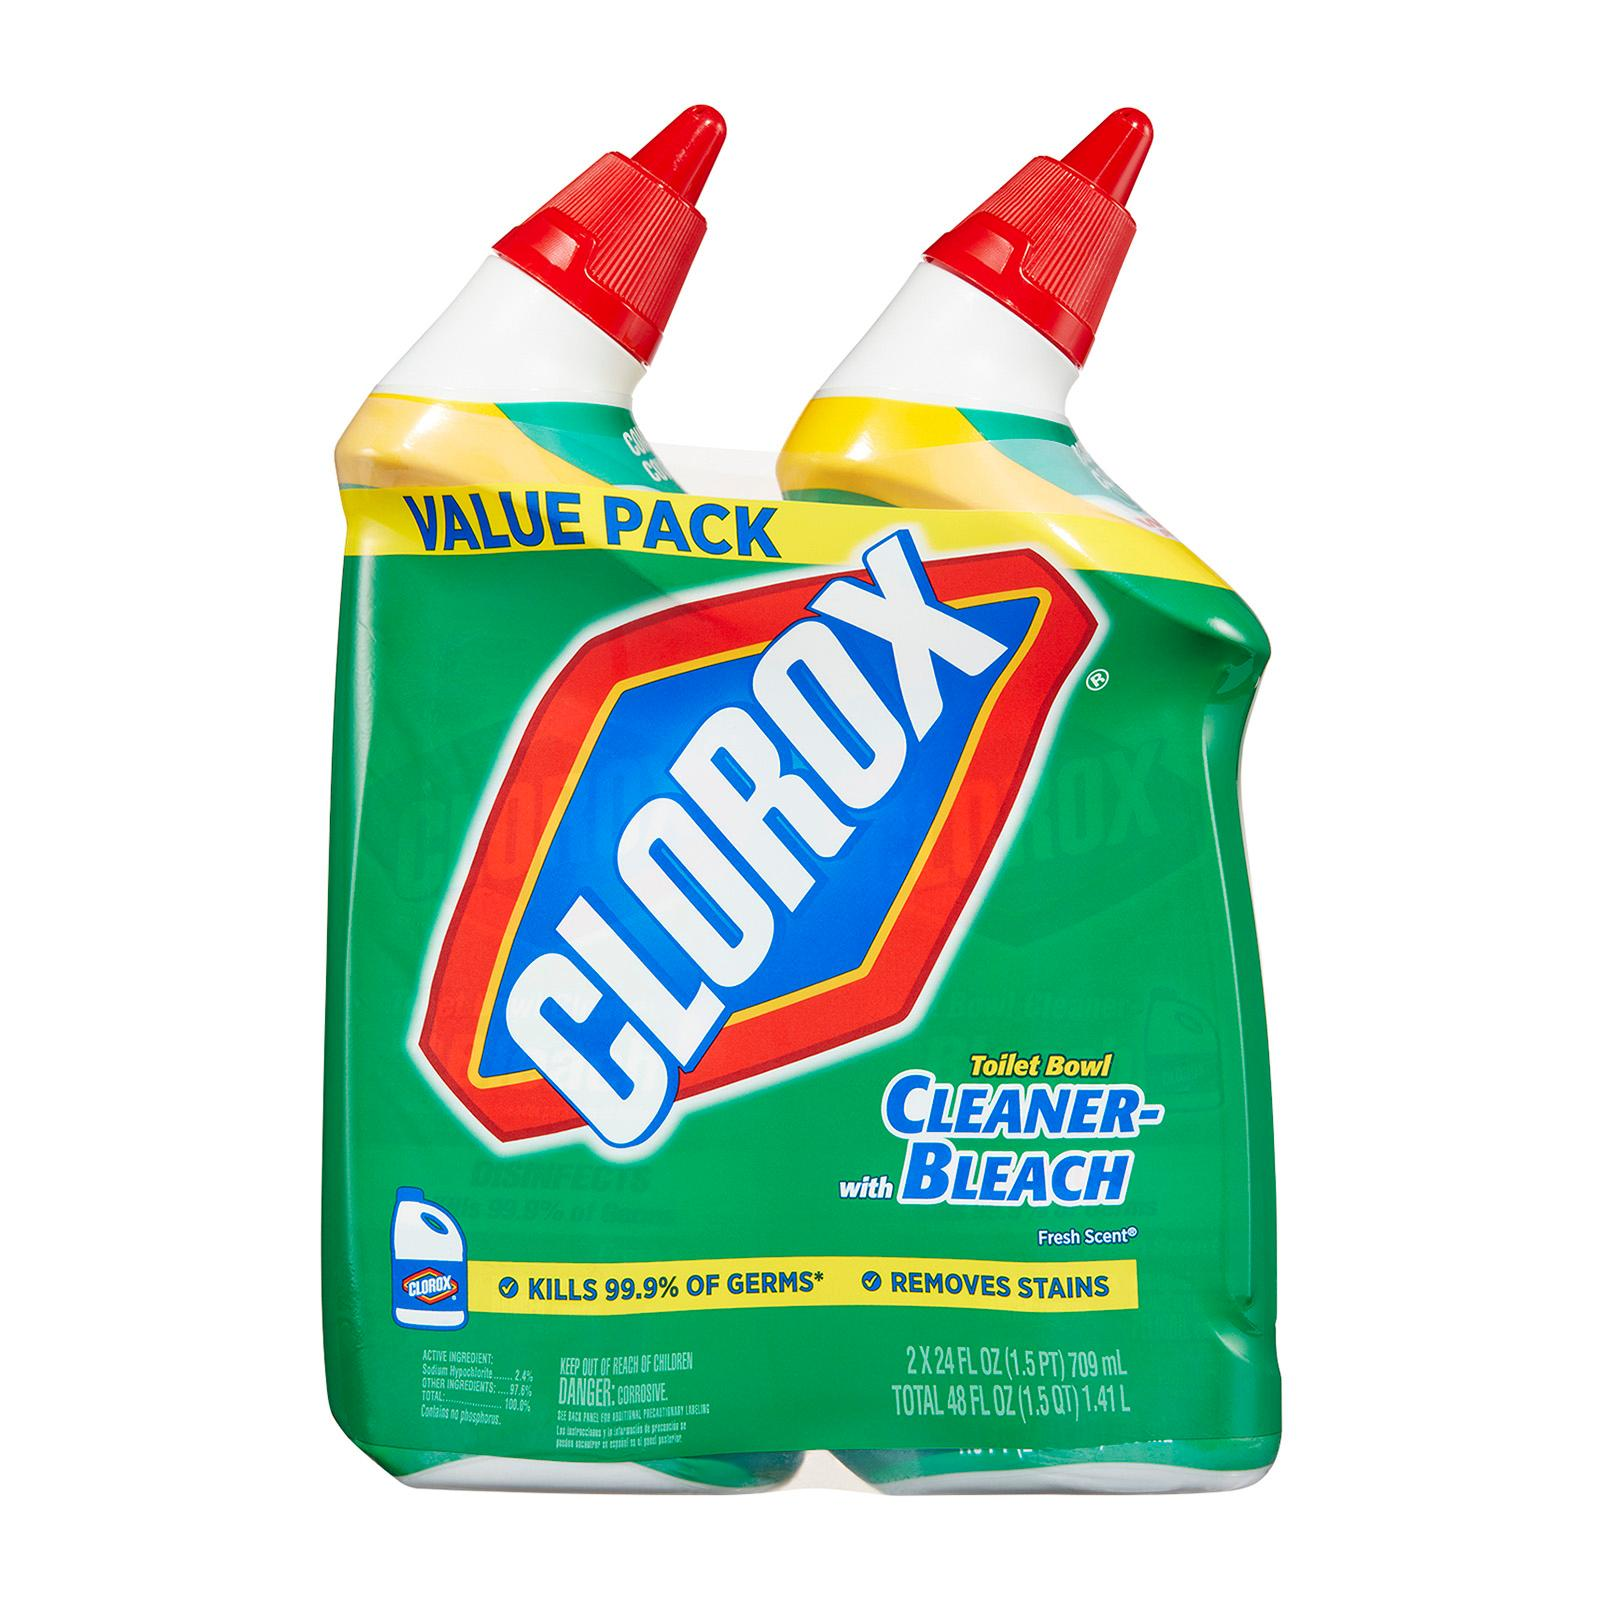 Clorox Toilet Bowl Cleaner with Bleach Twin Pack - Fresh Scent